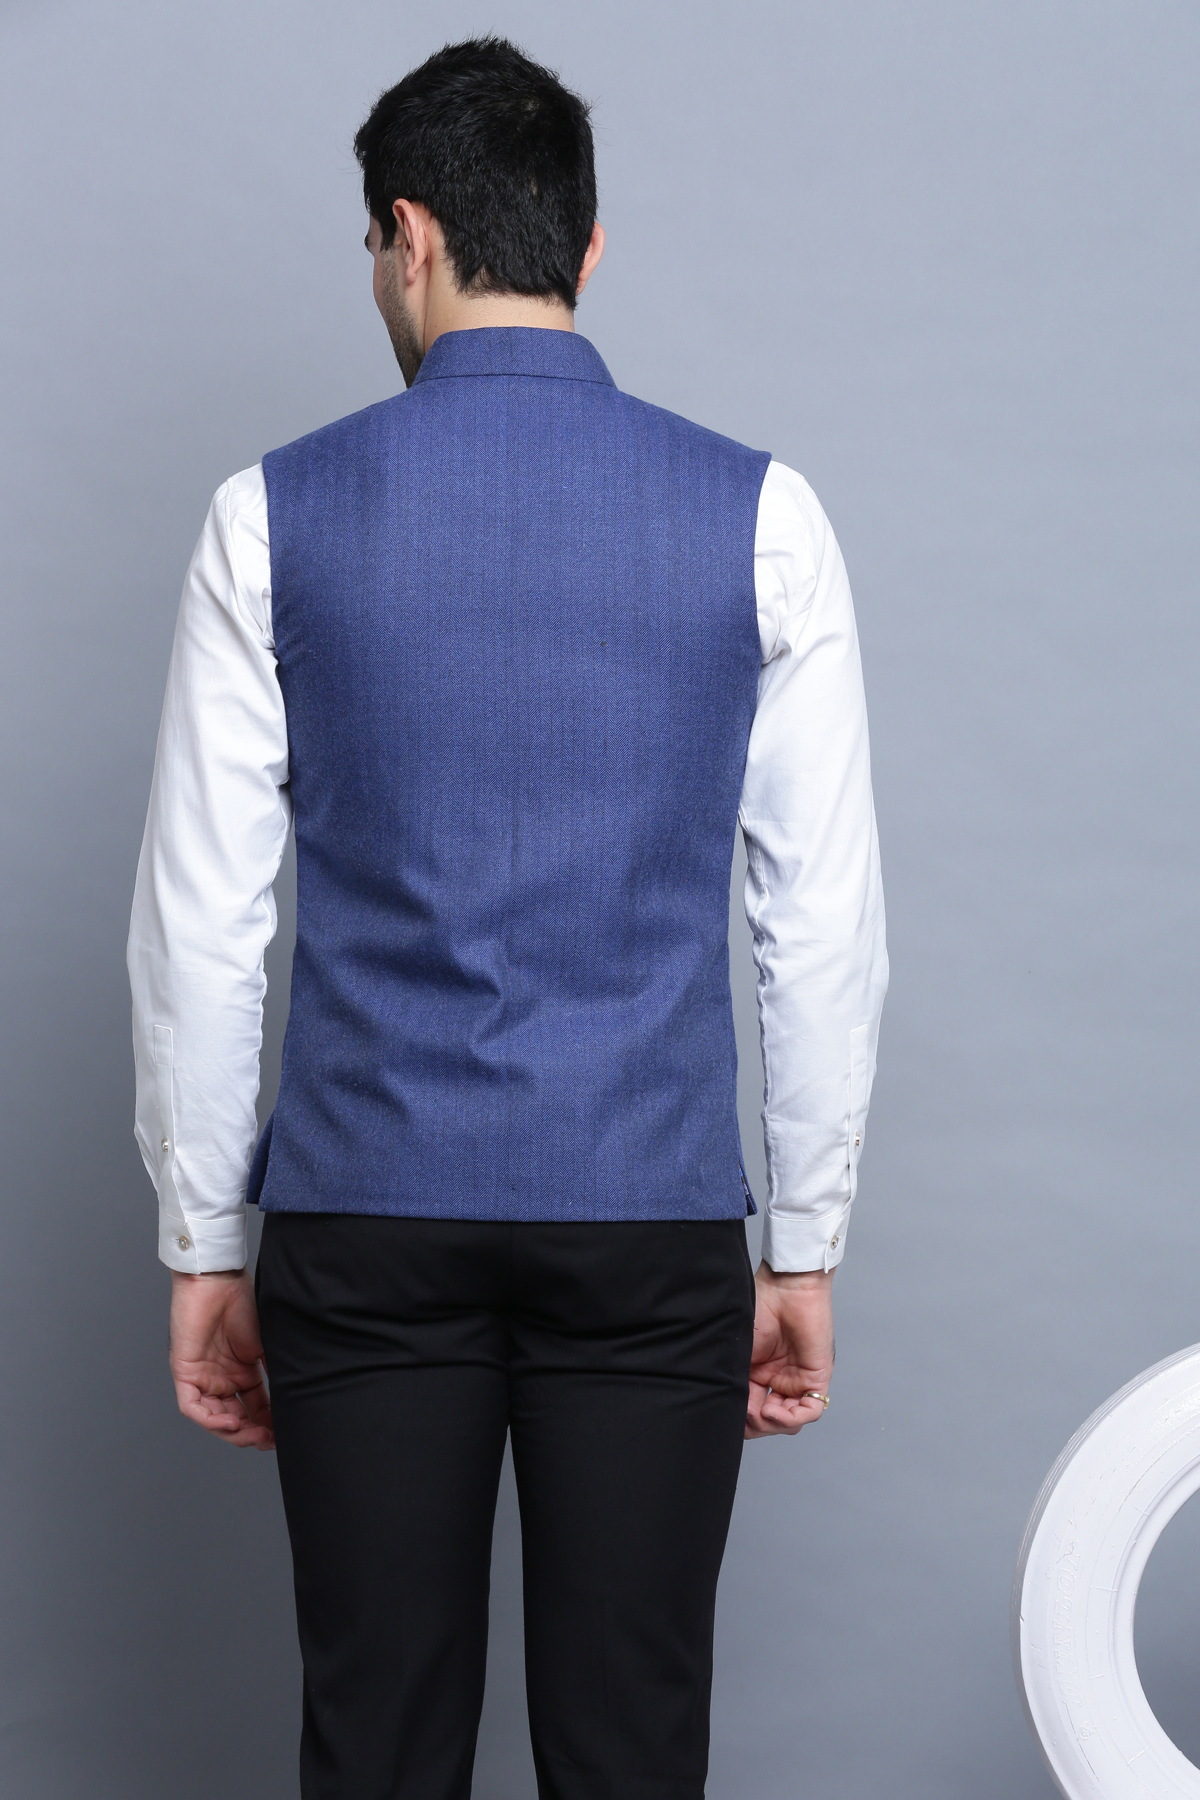 Calm Warrior Nehru Jacket